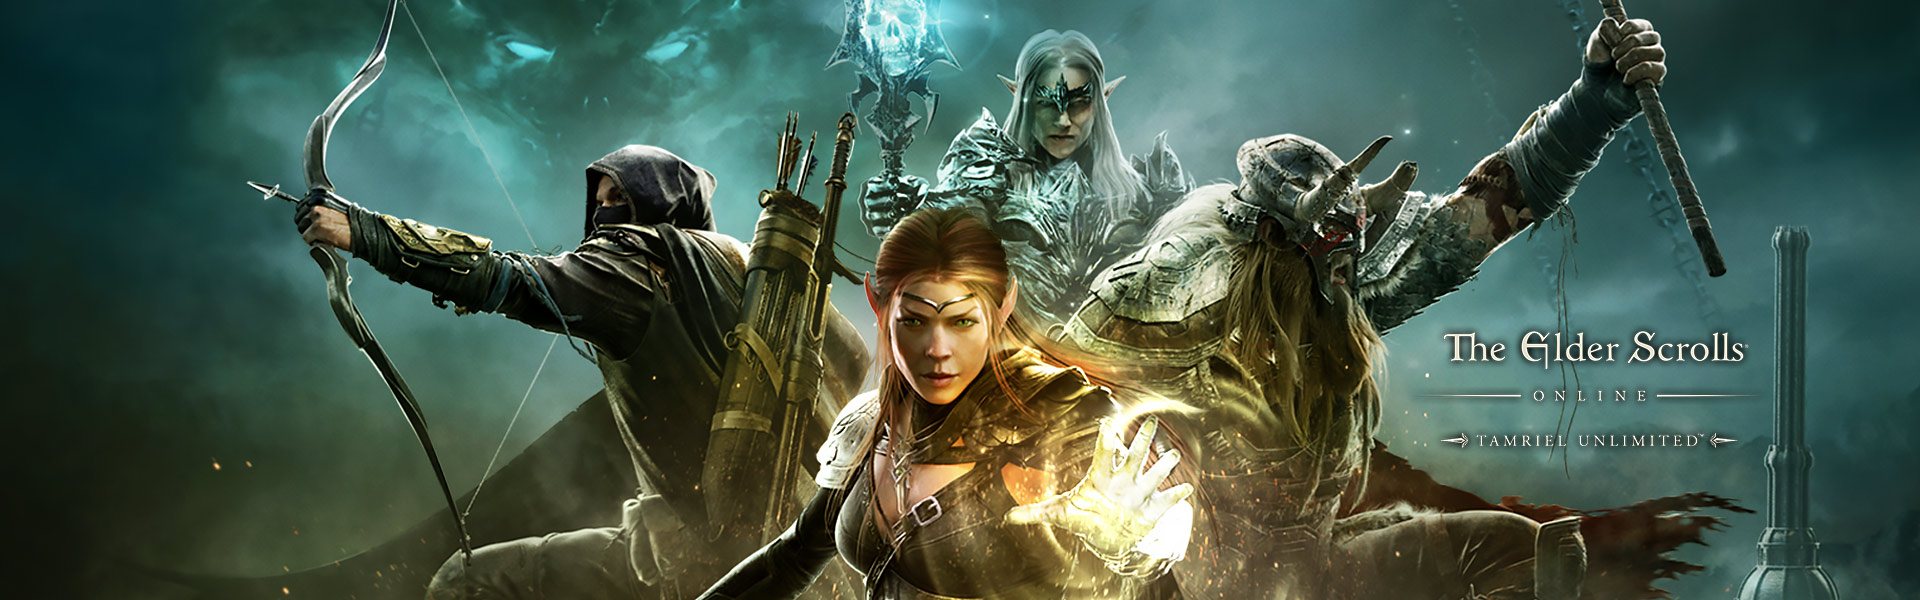 The Elder Scrolls Online Tamriel Unlimited, vier Charaktere in angriffsbereiter Position